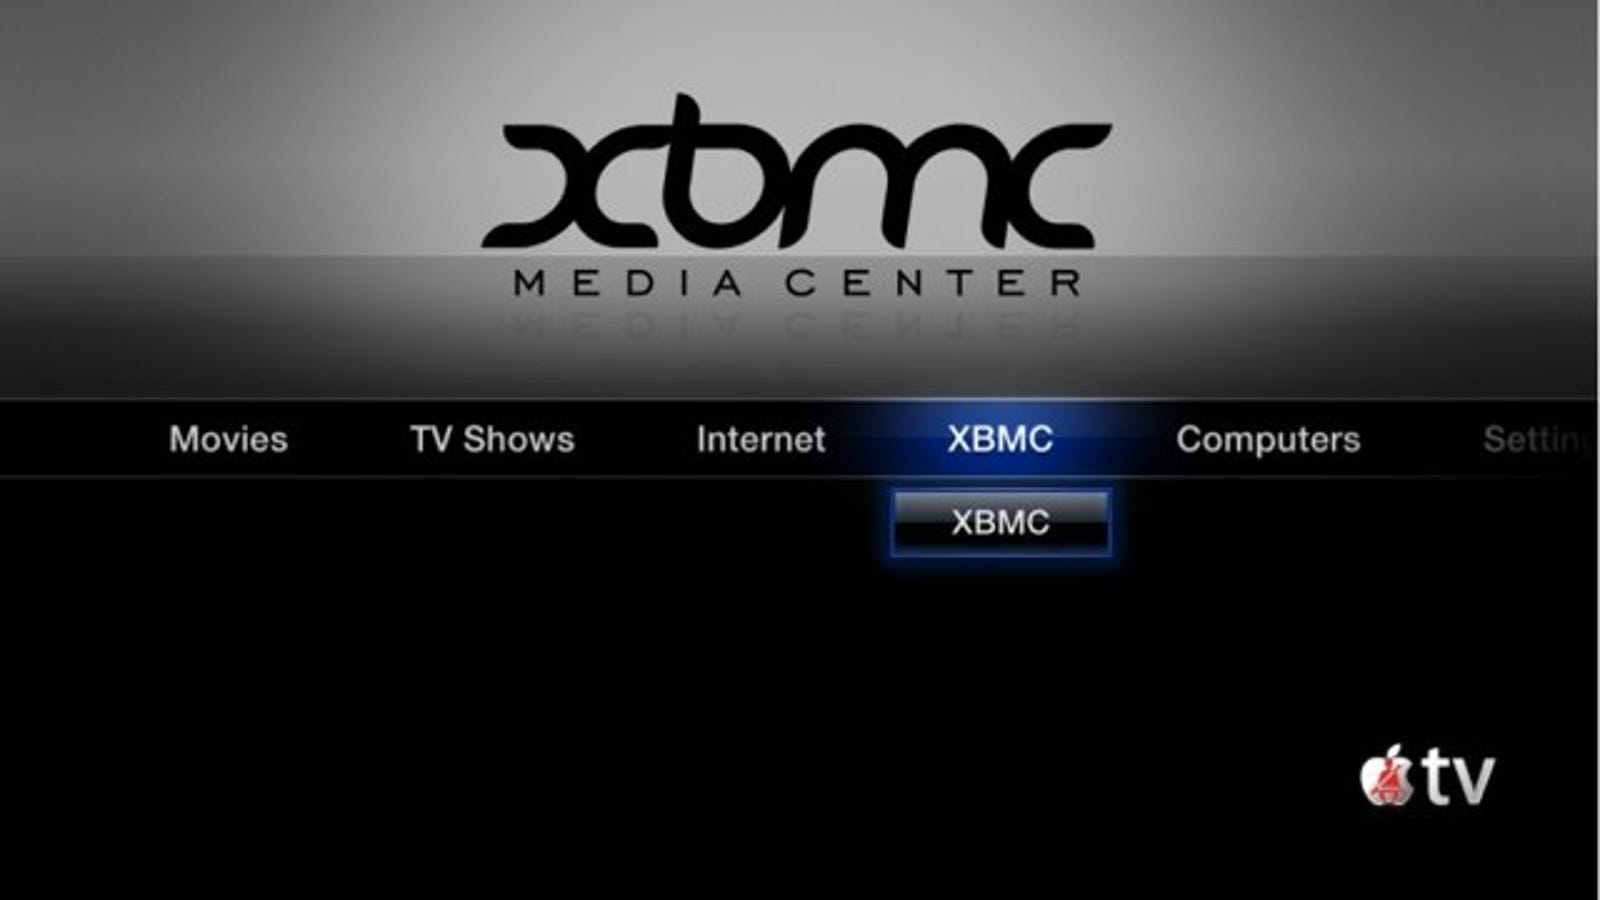 Install XBMC on the AppleTV 2